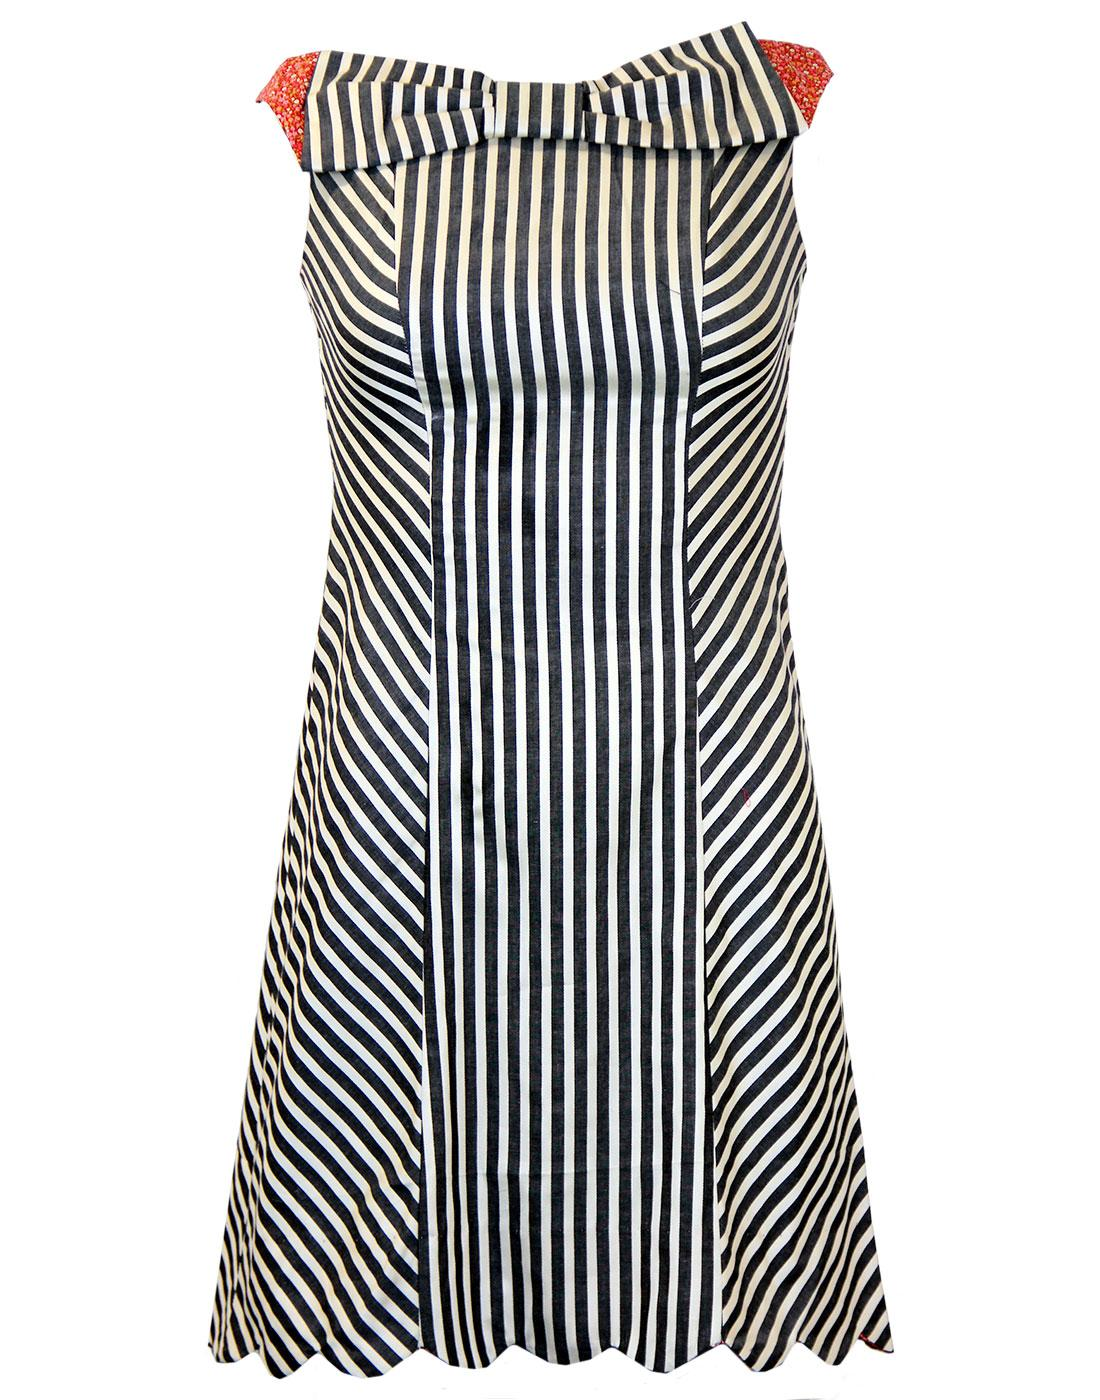 DAINTY JUNE Retro Vintage Striped Bow Dress